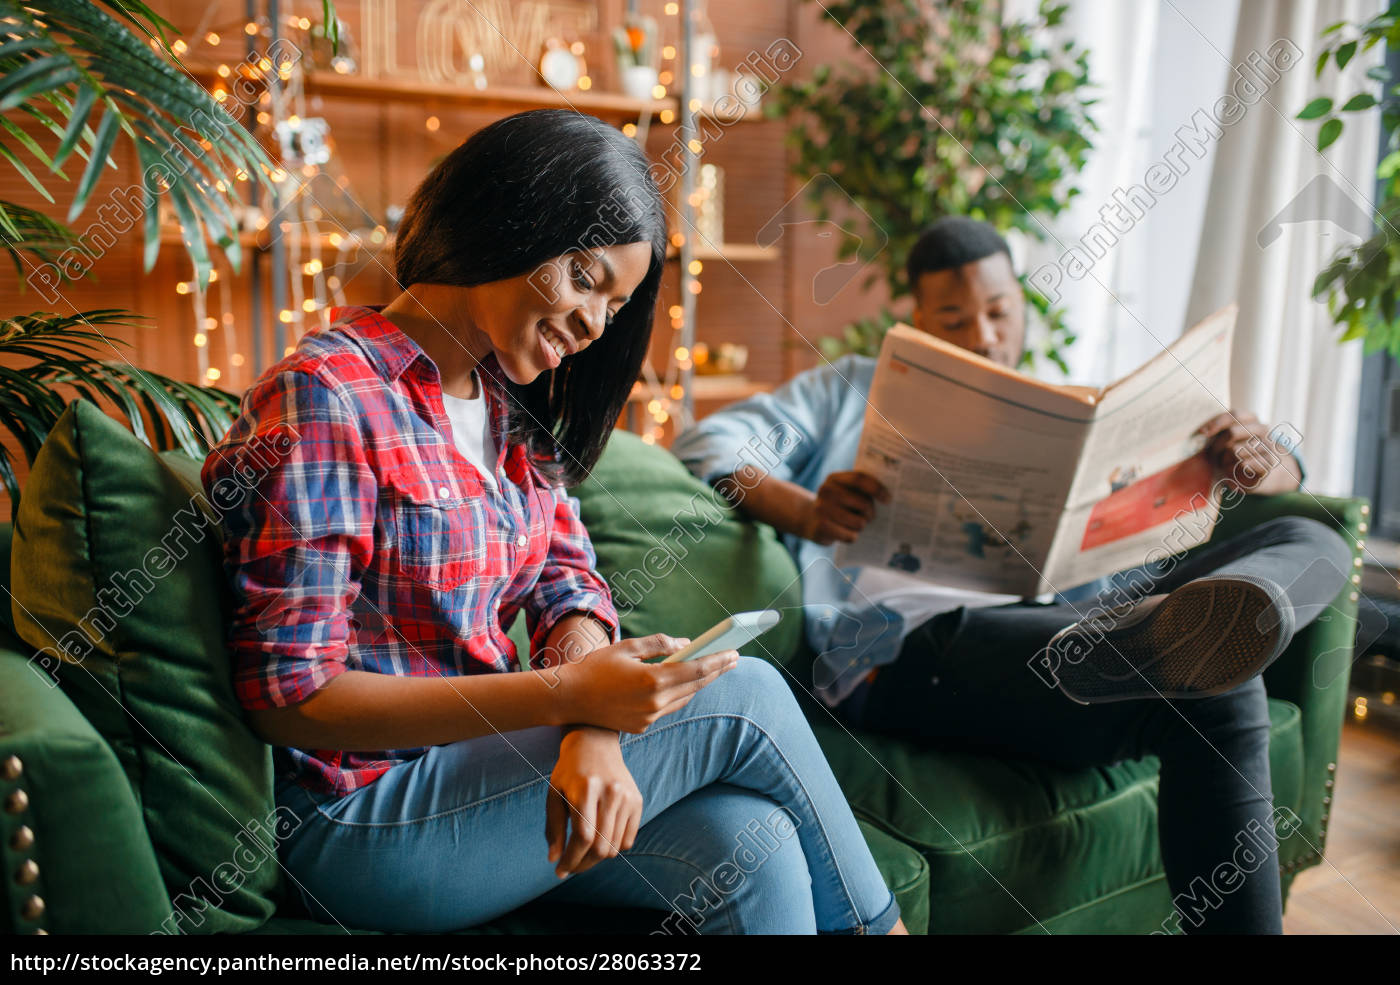 black, man, reading, newspaper, , his, woman - 28063372